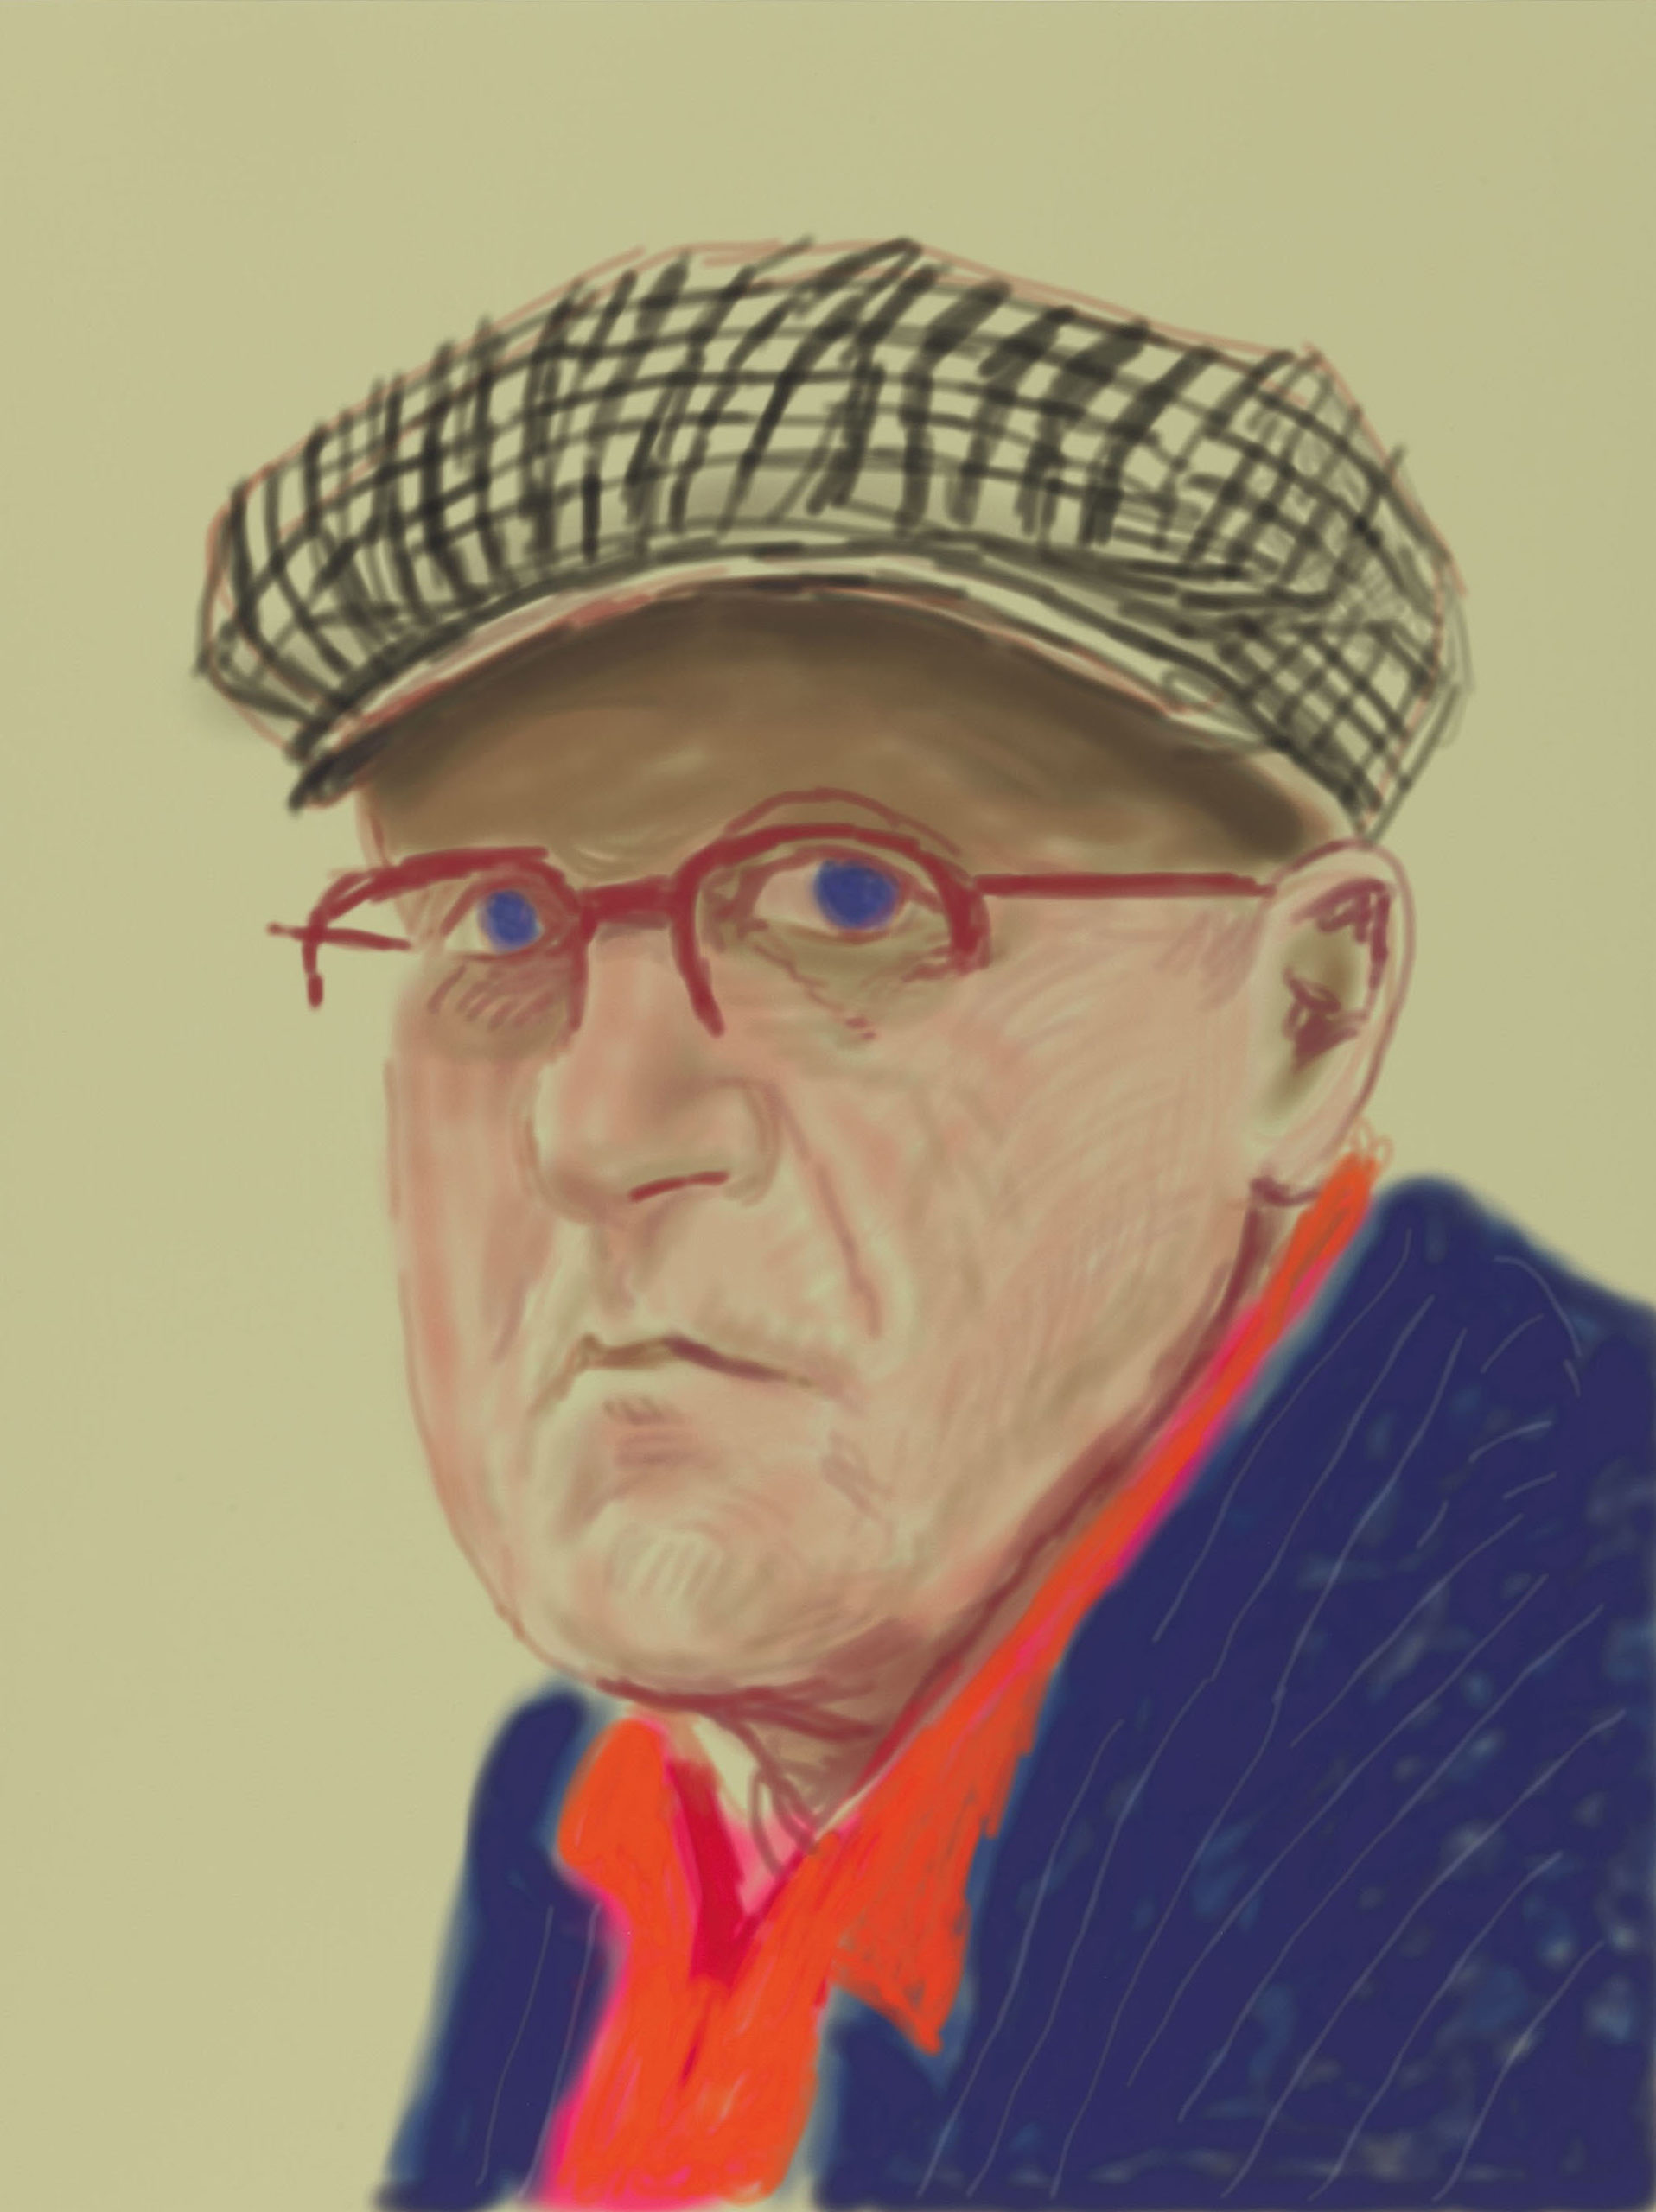 David Hockney self portrait No. 1201, 14th March 2012